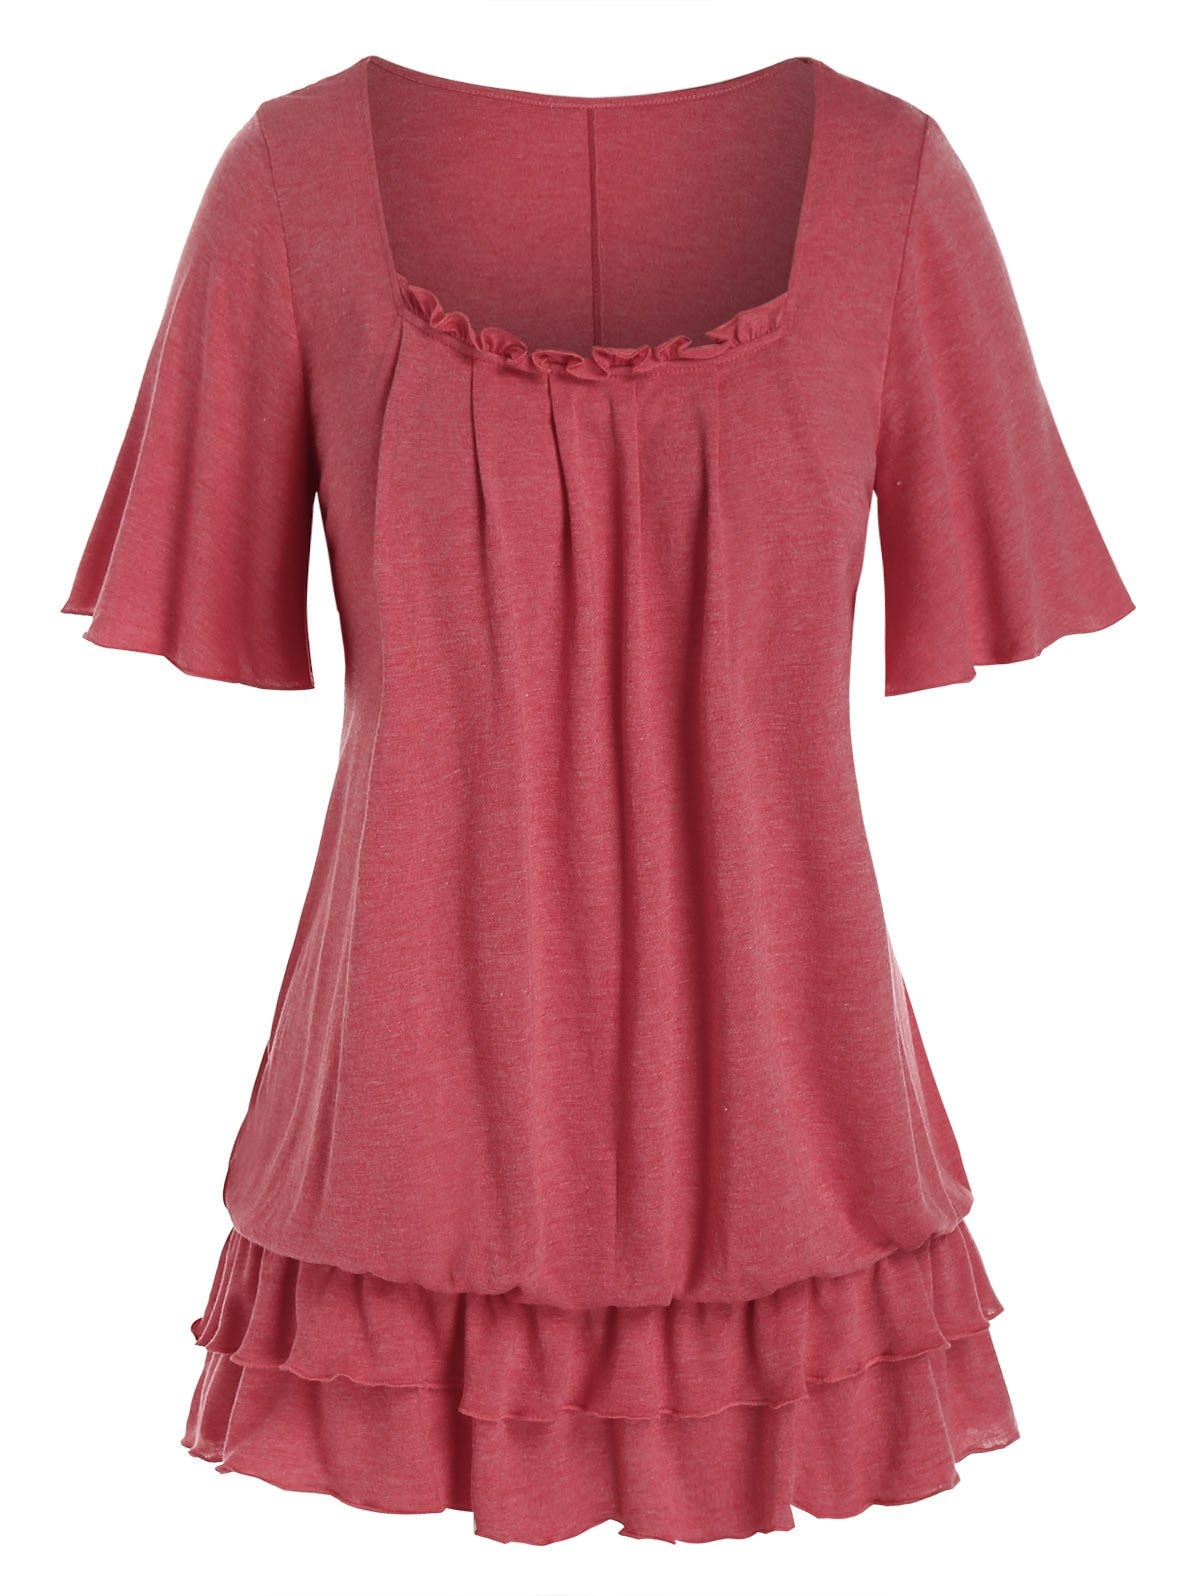 Plus Size Frilled Layered Flounce Flutter Sleeve Blouson Tee